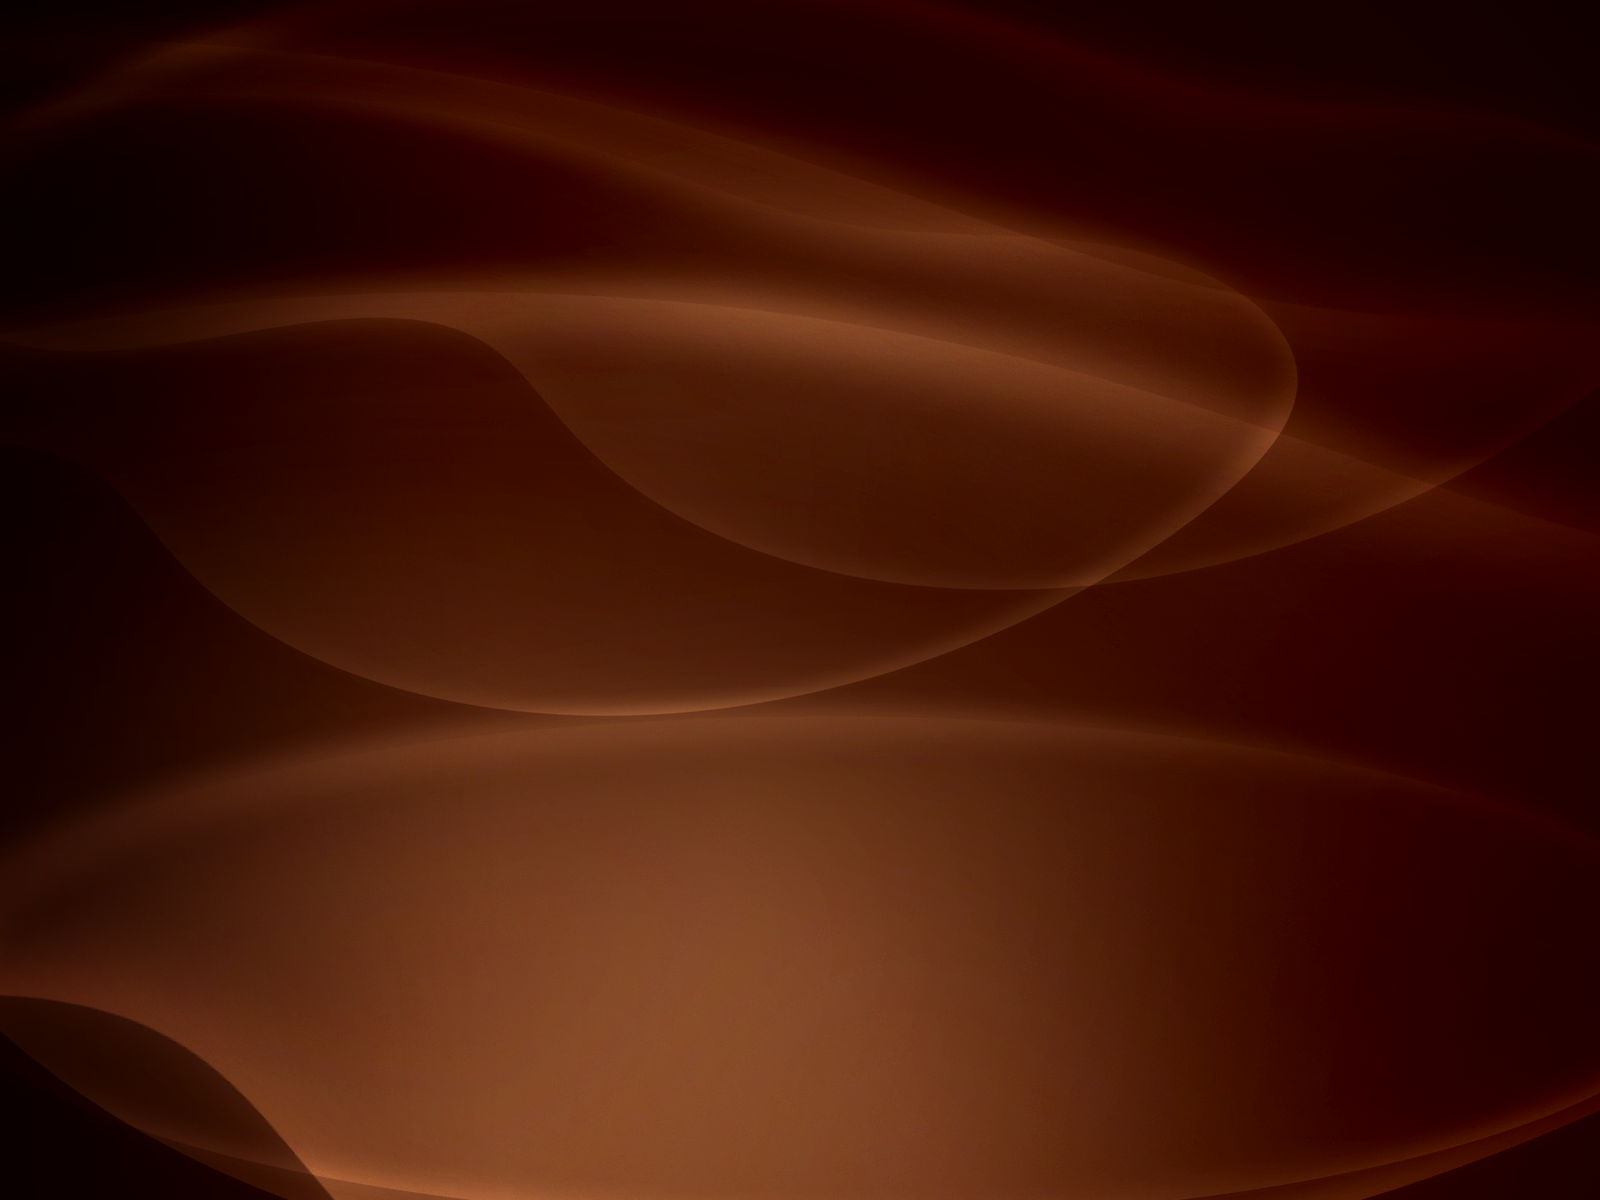 Computer Brown Wallpapers, Desktop Backgrounds 1600x1200